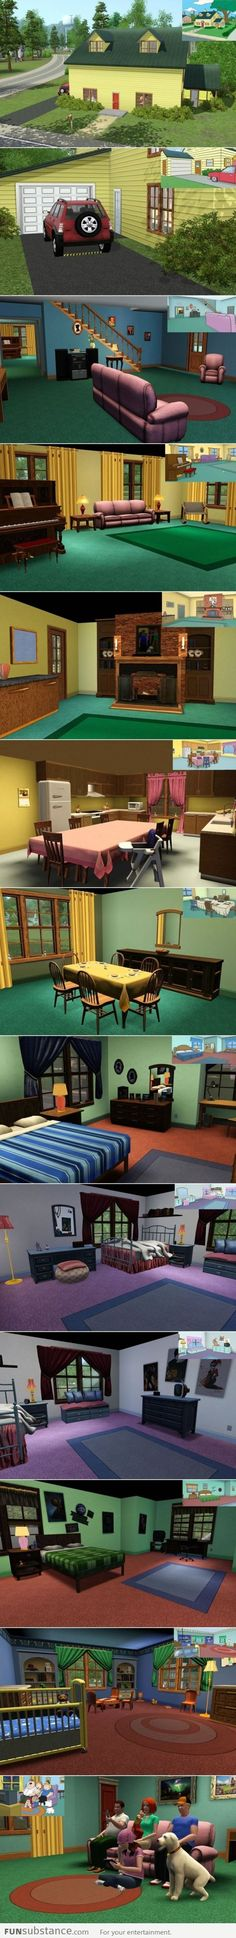 Family Guy and The Sims. Half of me says this is REALLY COOL and the other half says get a life. lol